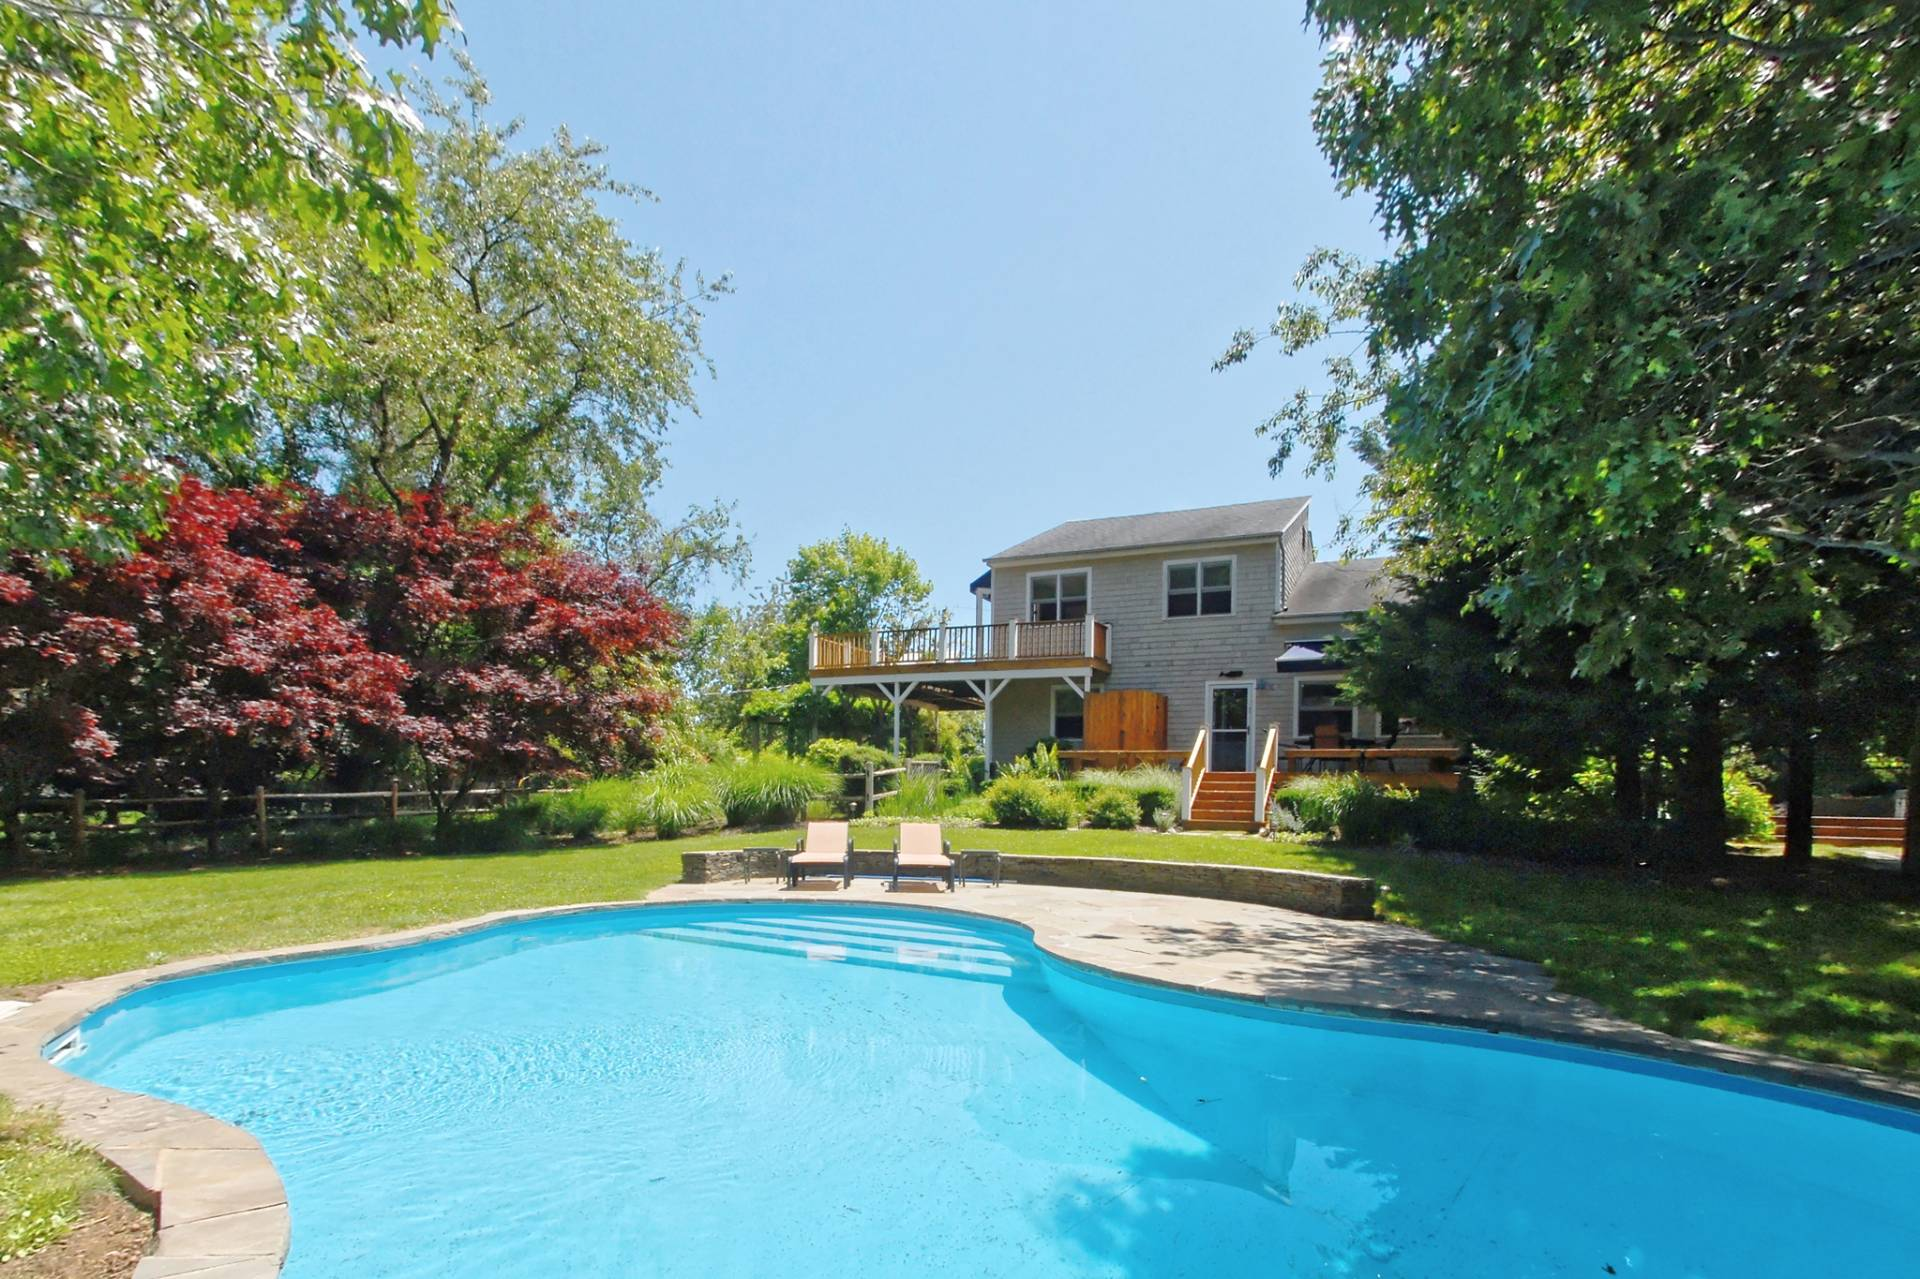 Single Family Home for Sale at Shelter Island Contemporary With Pool Close To Beach 51 Westmoreland Drive, Shelter Island, New York